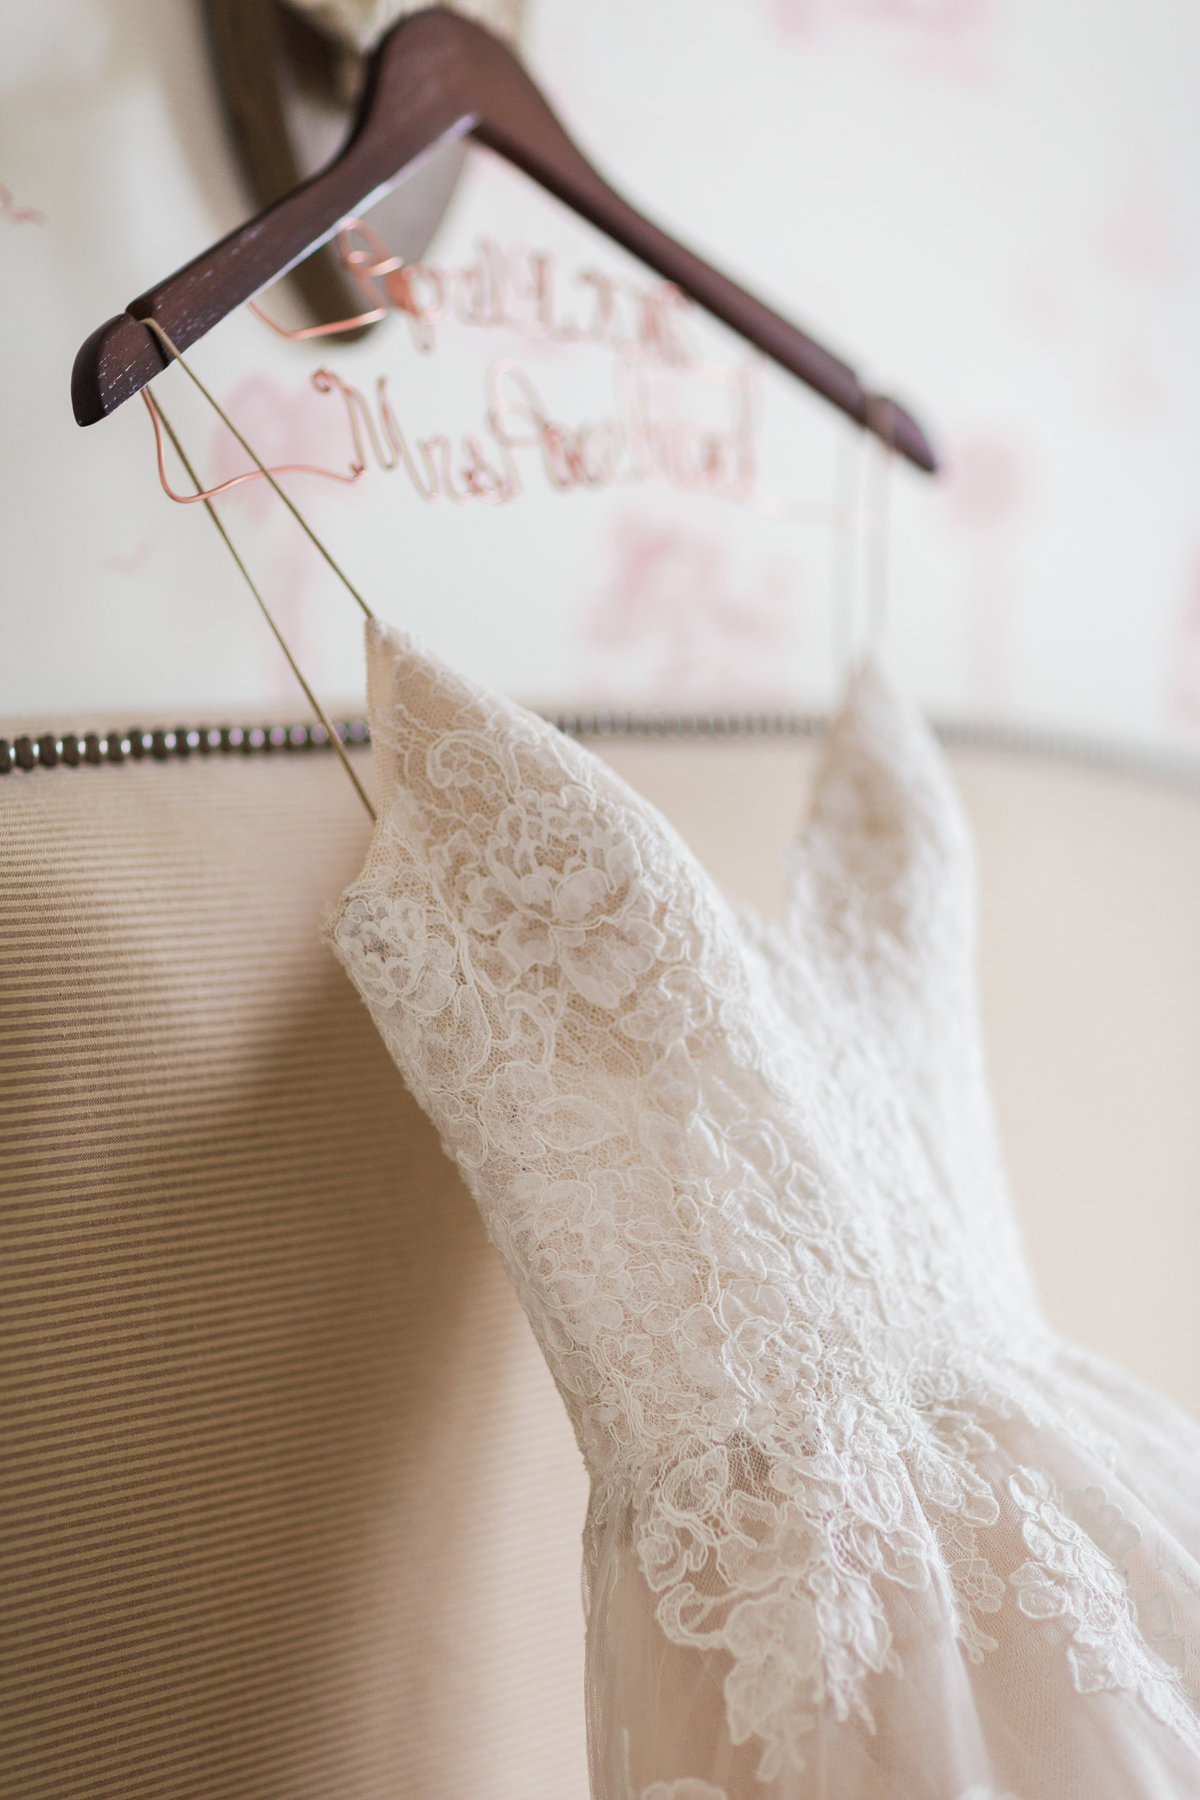 Palihouse_Cielo_Farms_Malibu_Rustic_Wedding_Valorie_Darling_Photography - 9 of 107